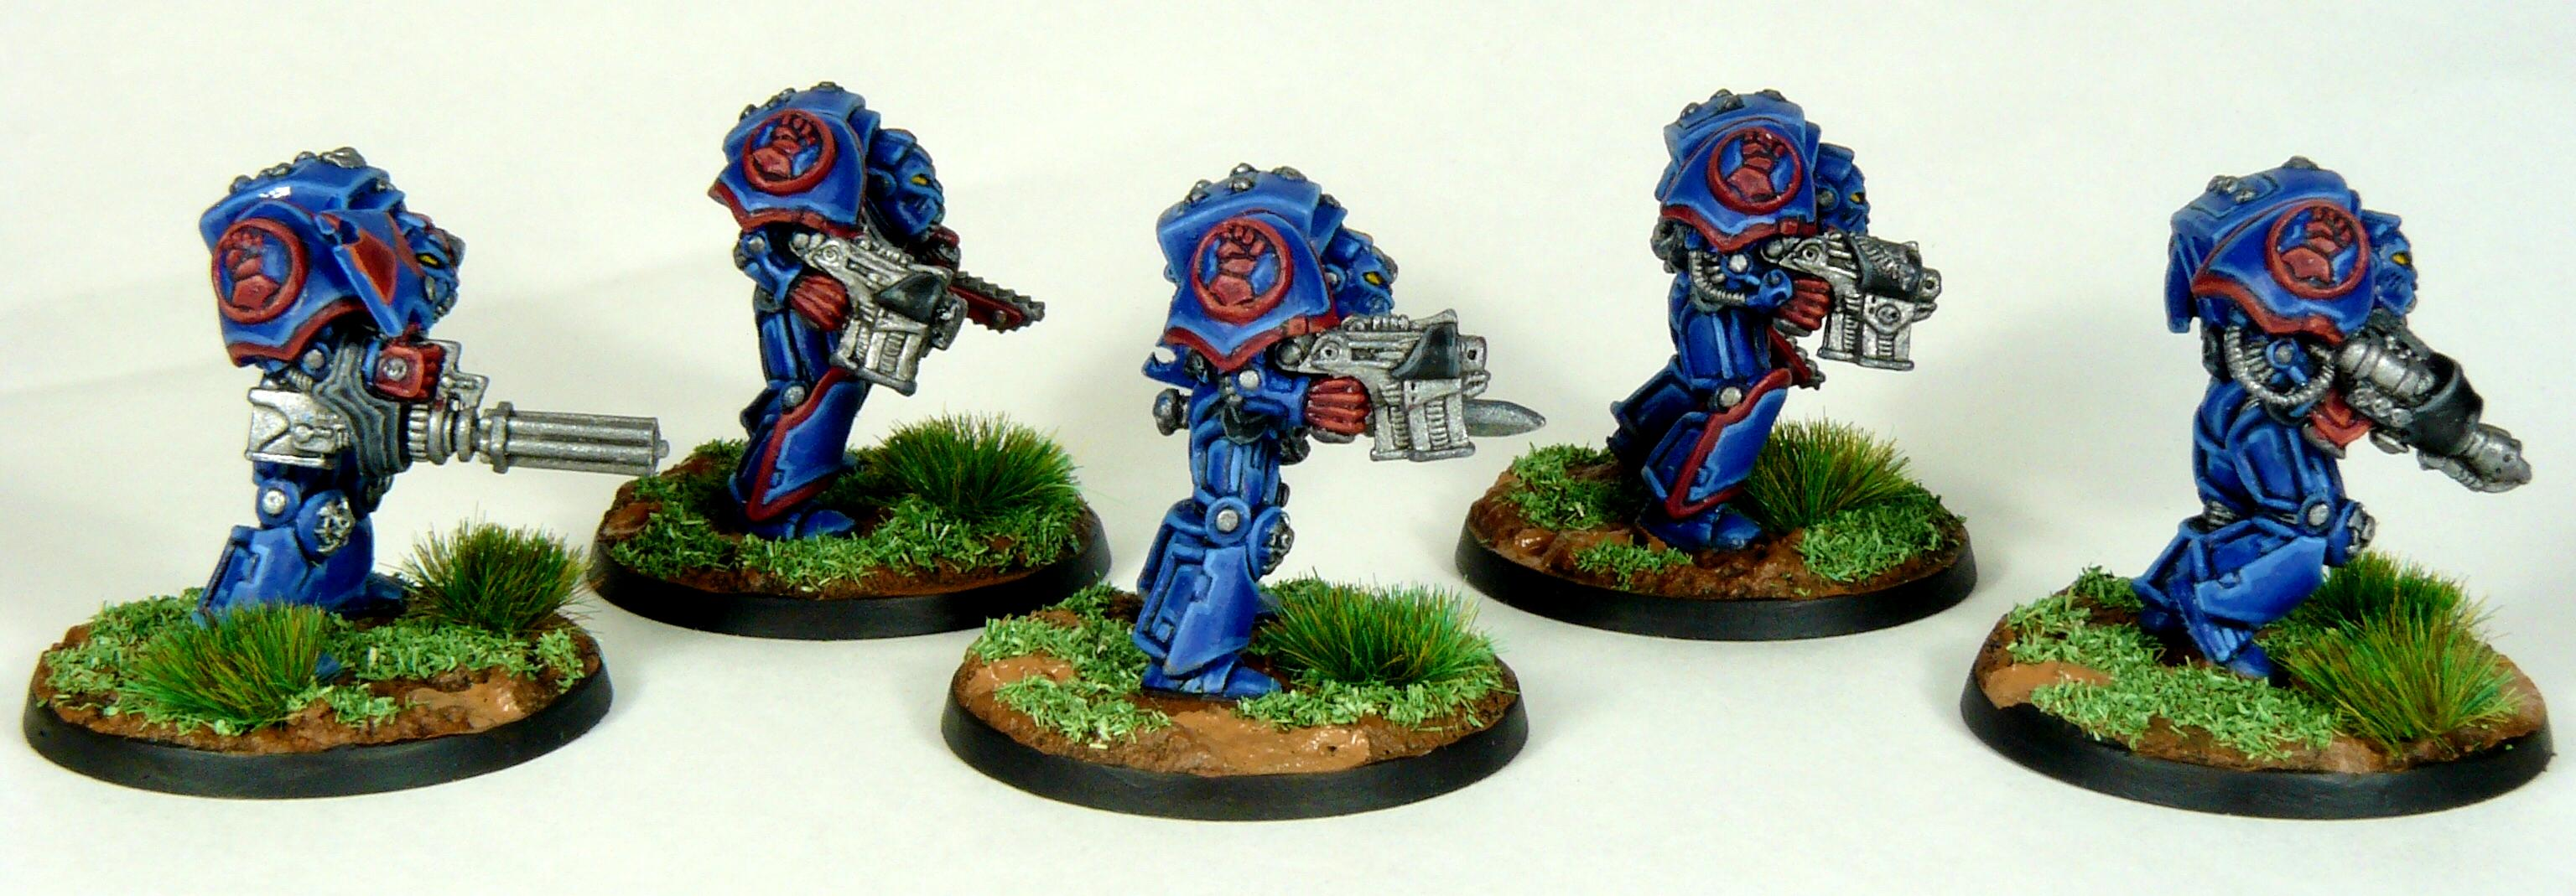 Crimson Fists, Rogue Trader, Rtb9, Space Marines, Terminator Armor, Warhammer 40,000